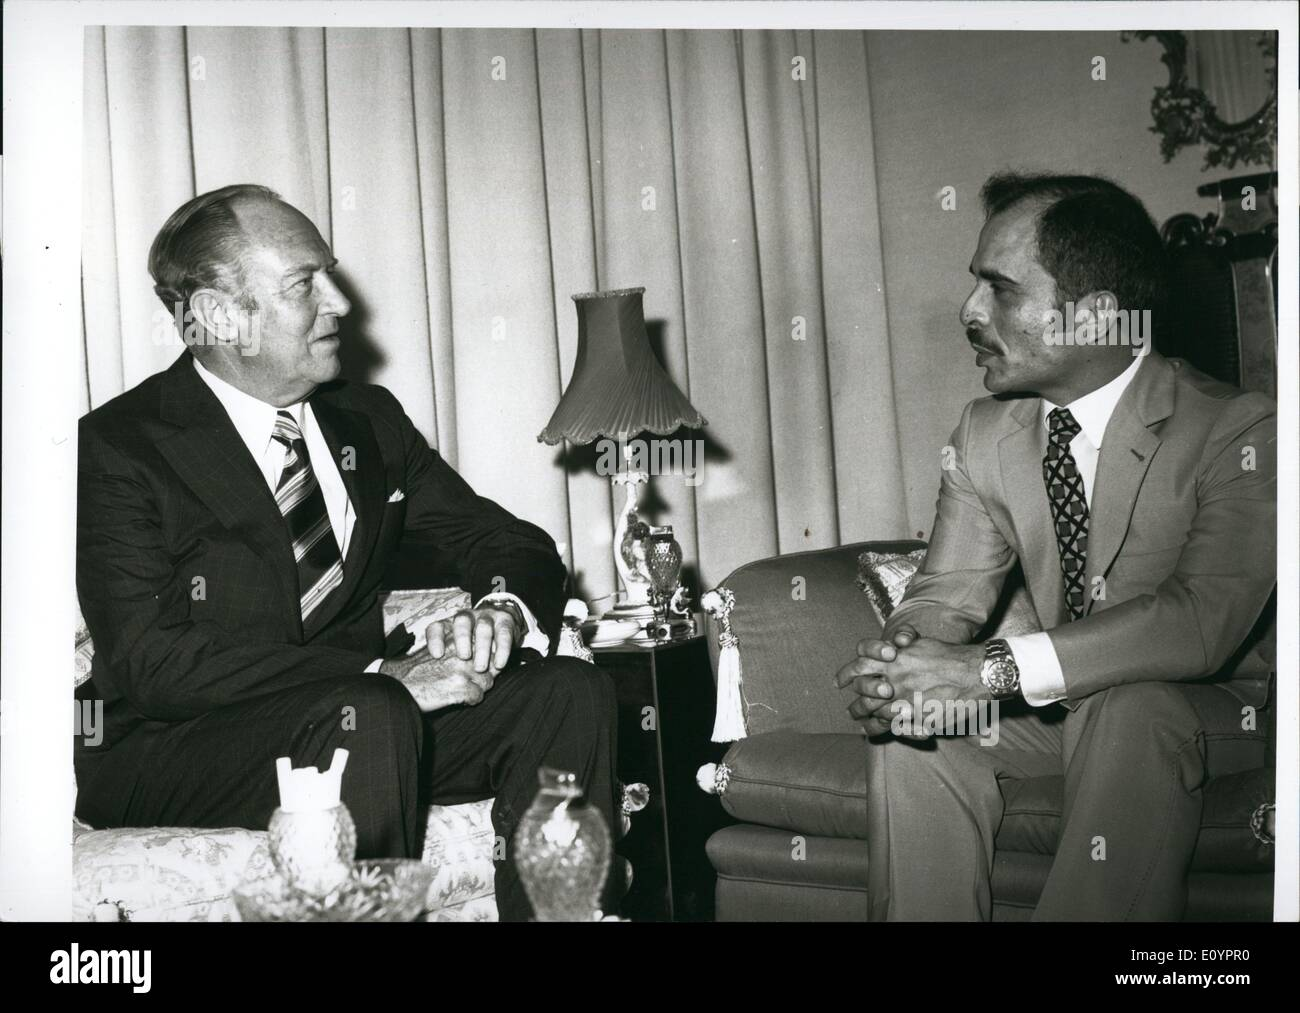 Mar. 03, 1971 - King Hussein, in a separate meeting with William Rogers at AL-Hummat Palace, near Amman. Other Pictures showing - Stock Image